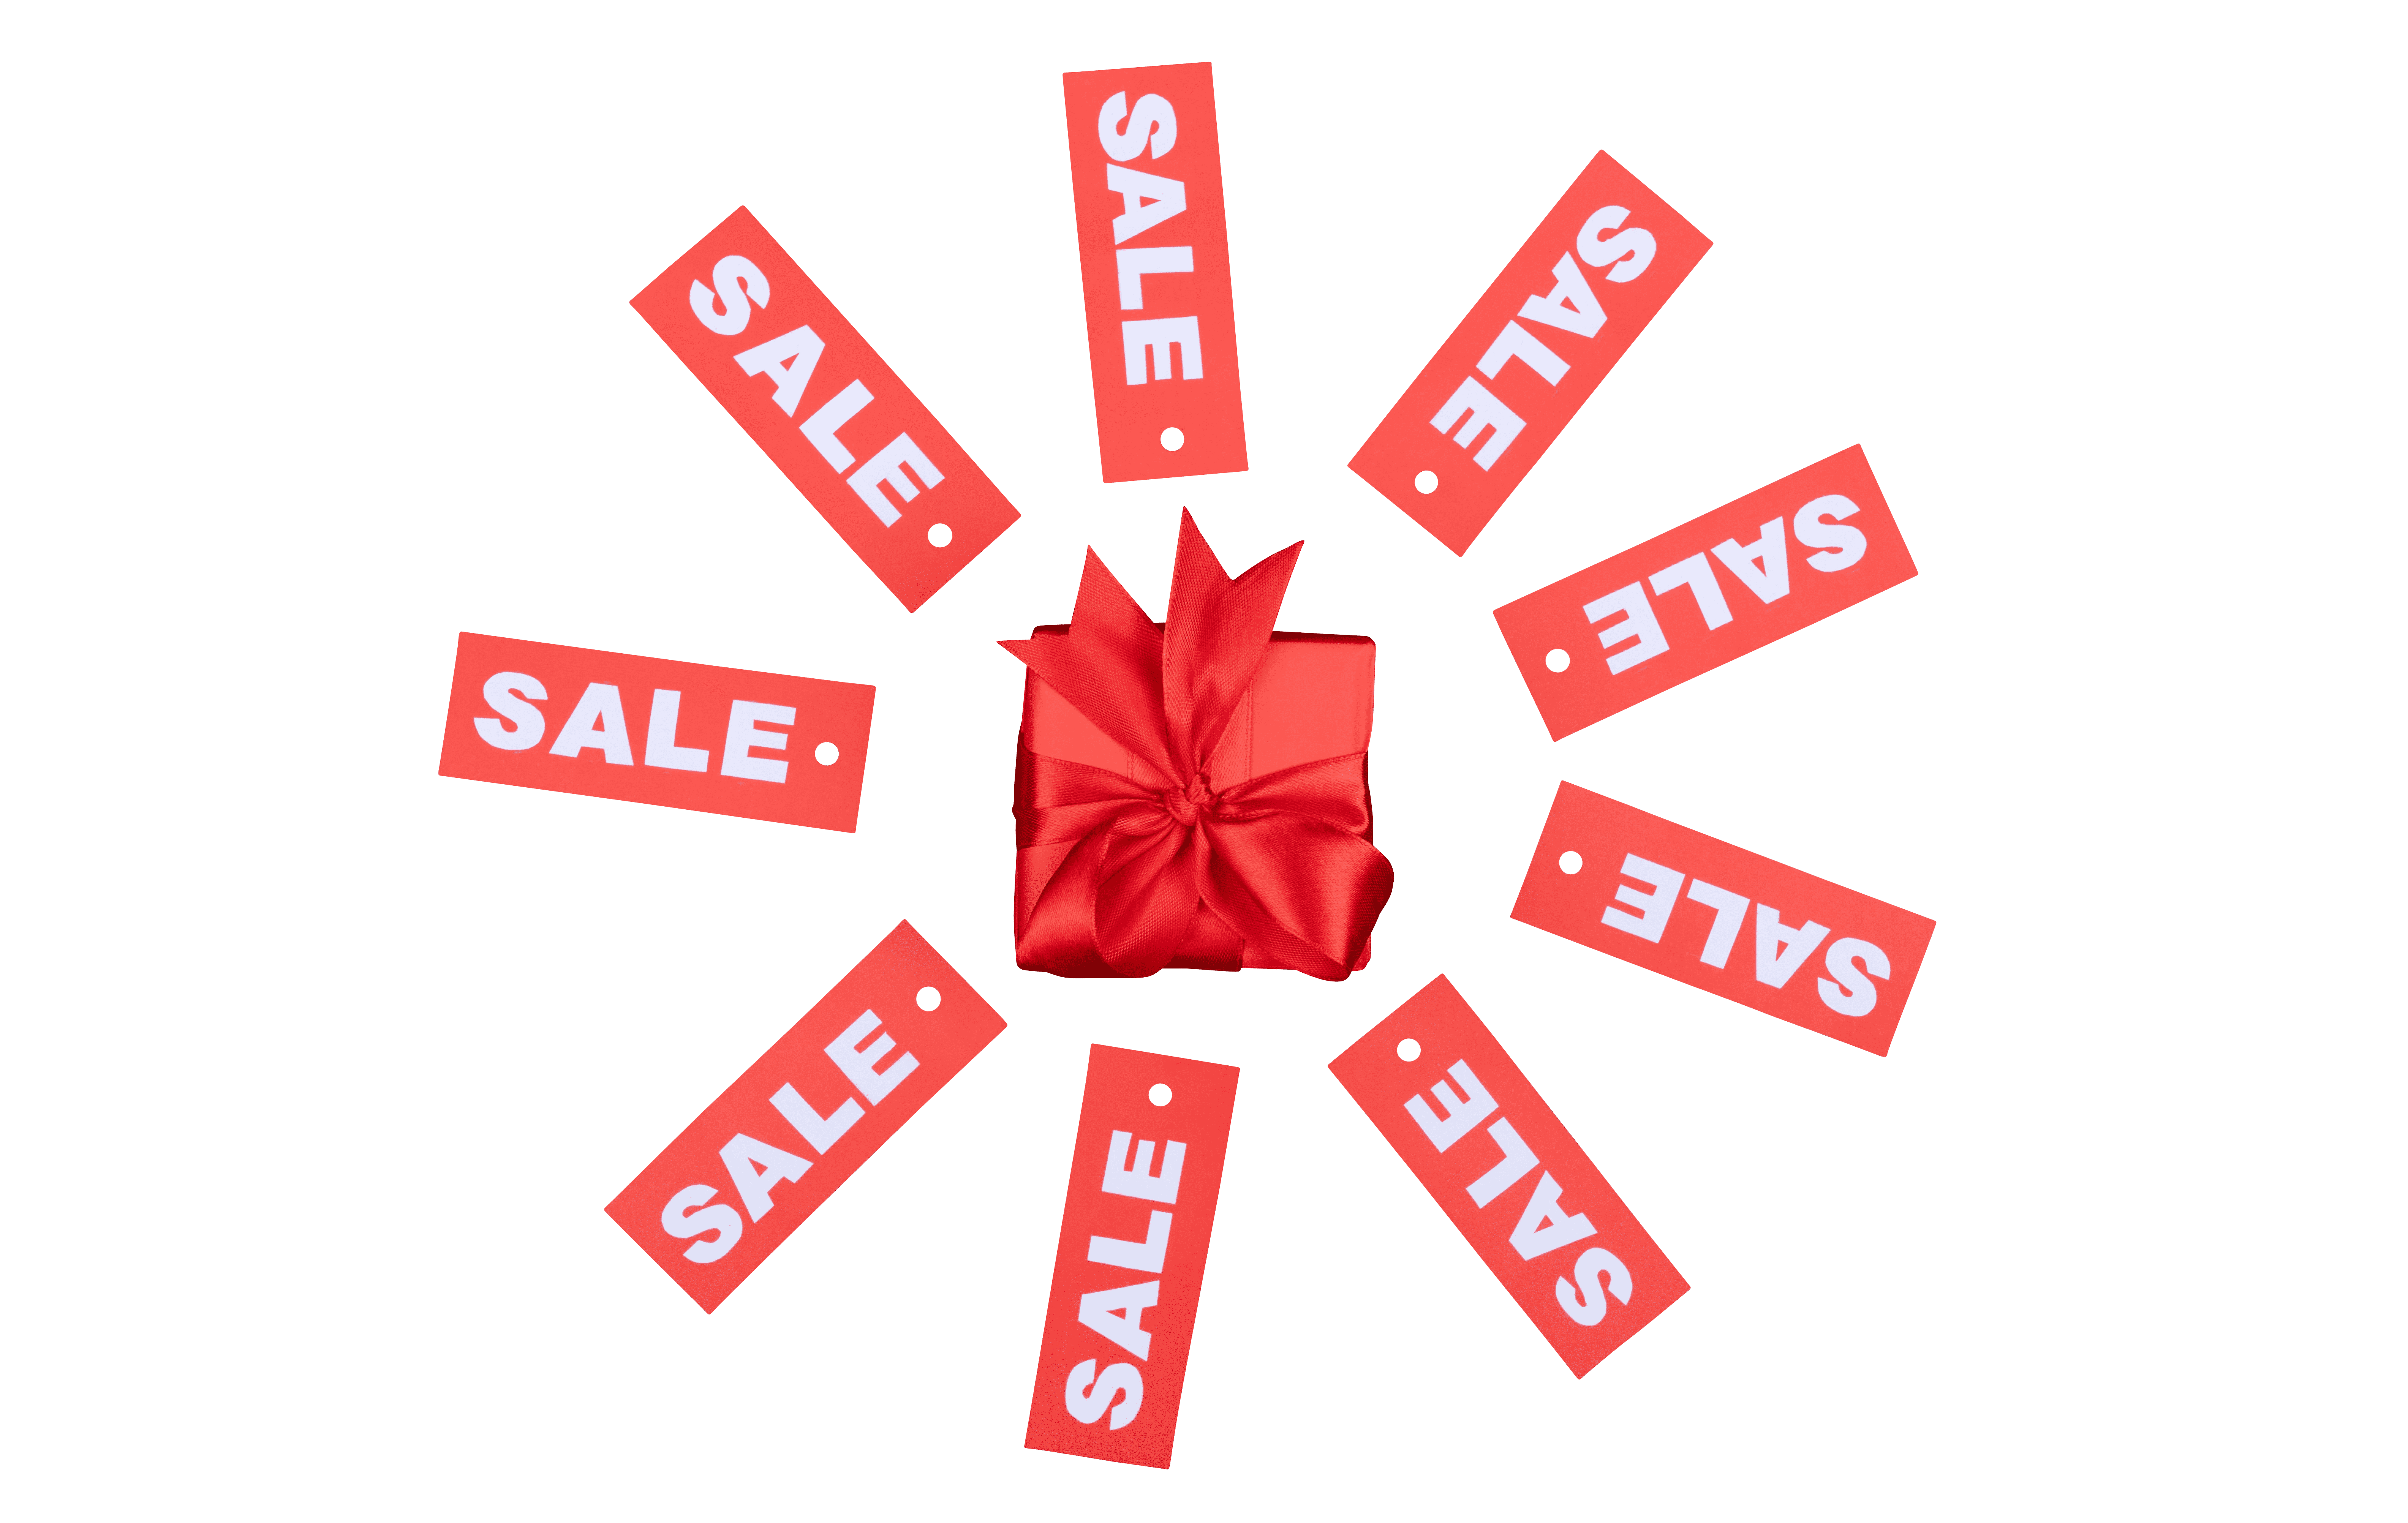 Wrapped gift boxes for sale transparent background.png